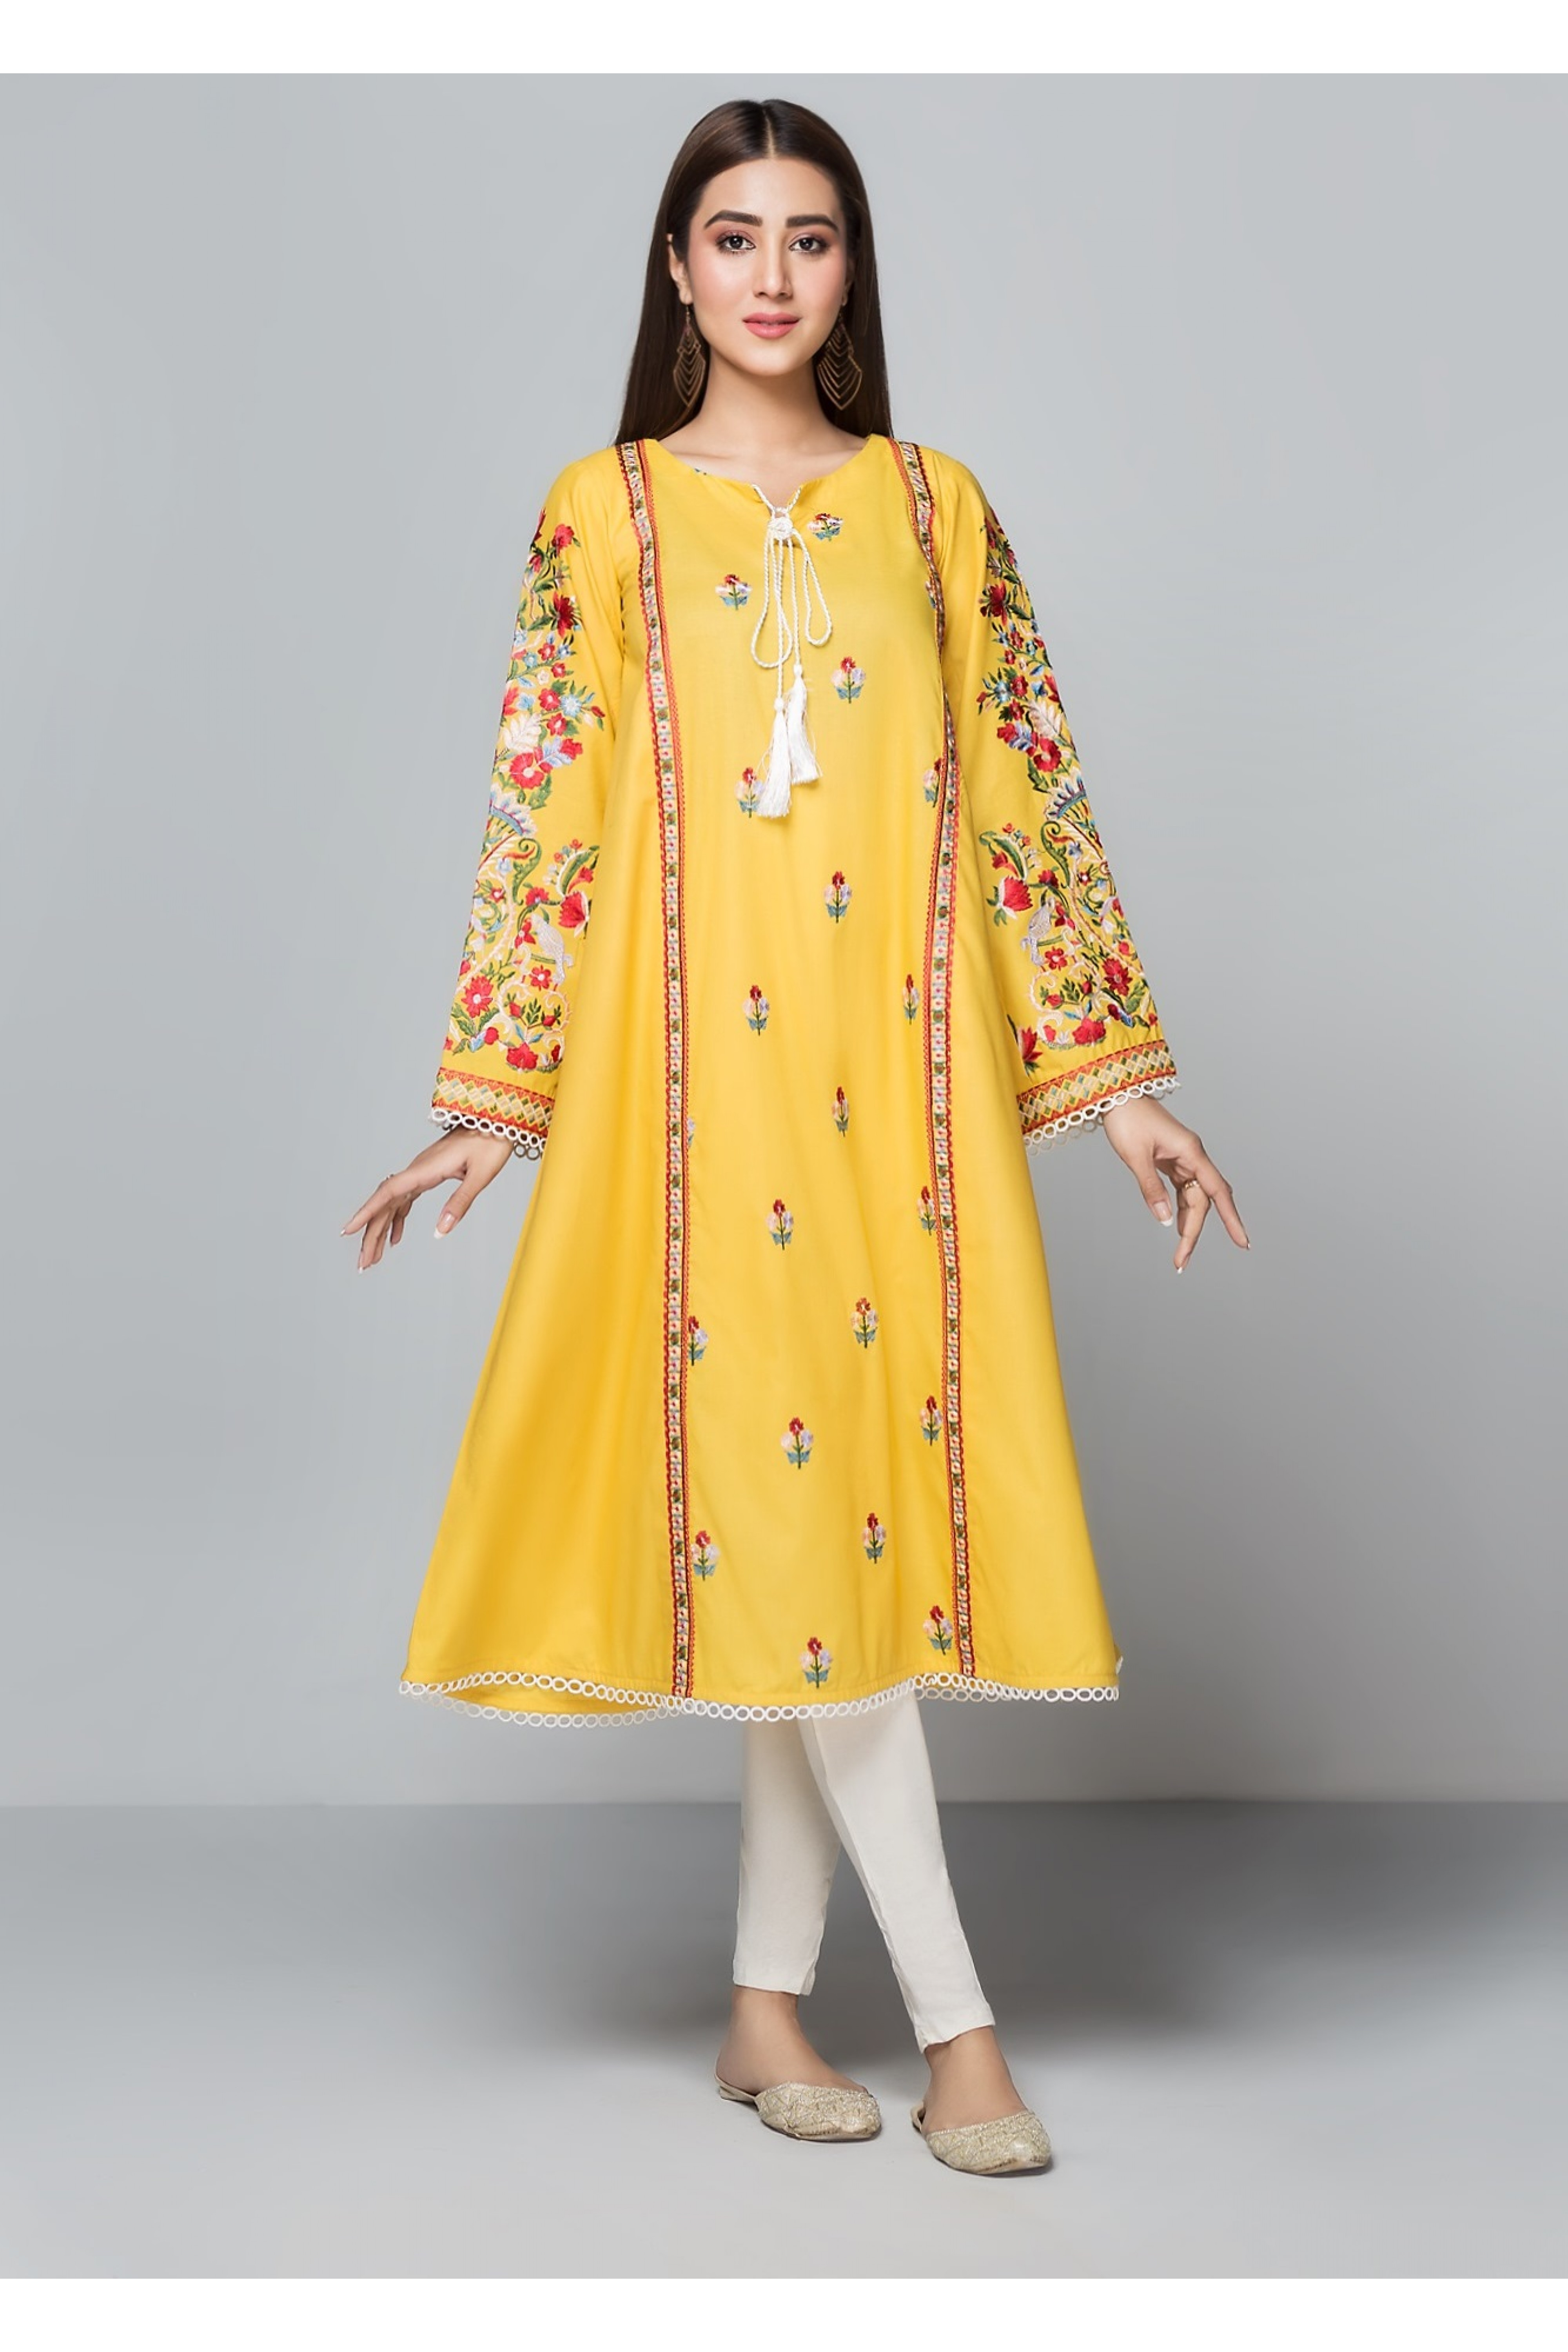 LAGOON(Embroidered Frock)